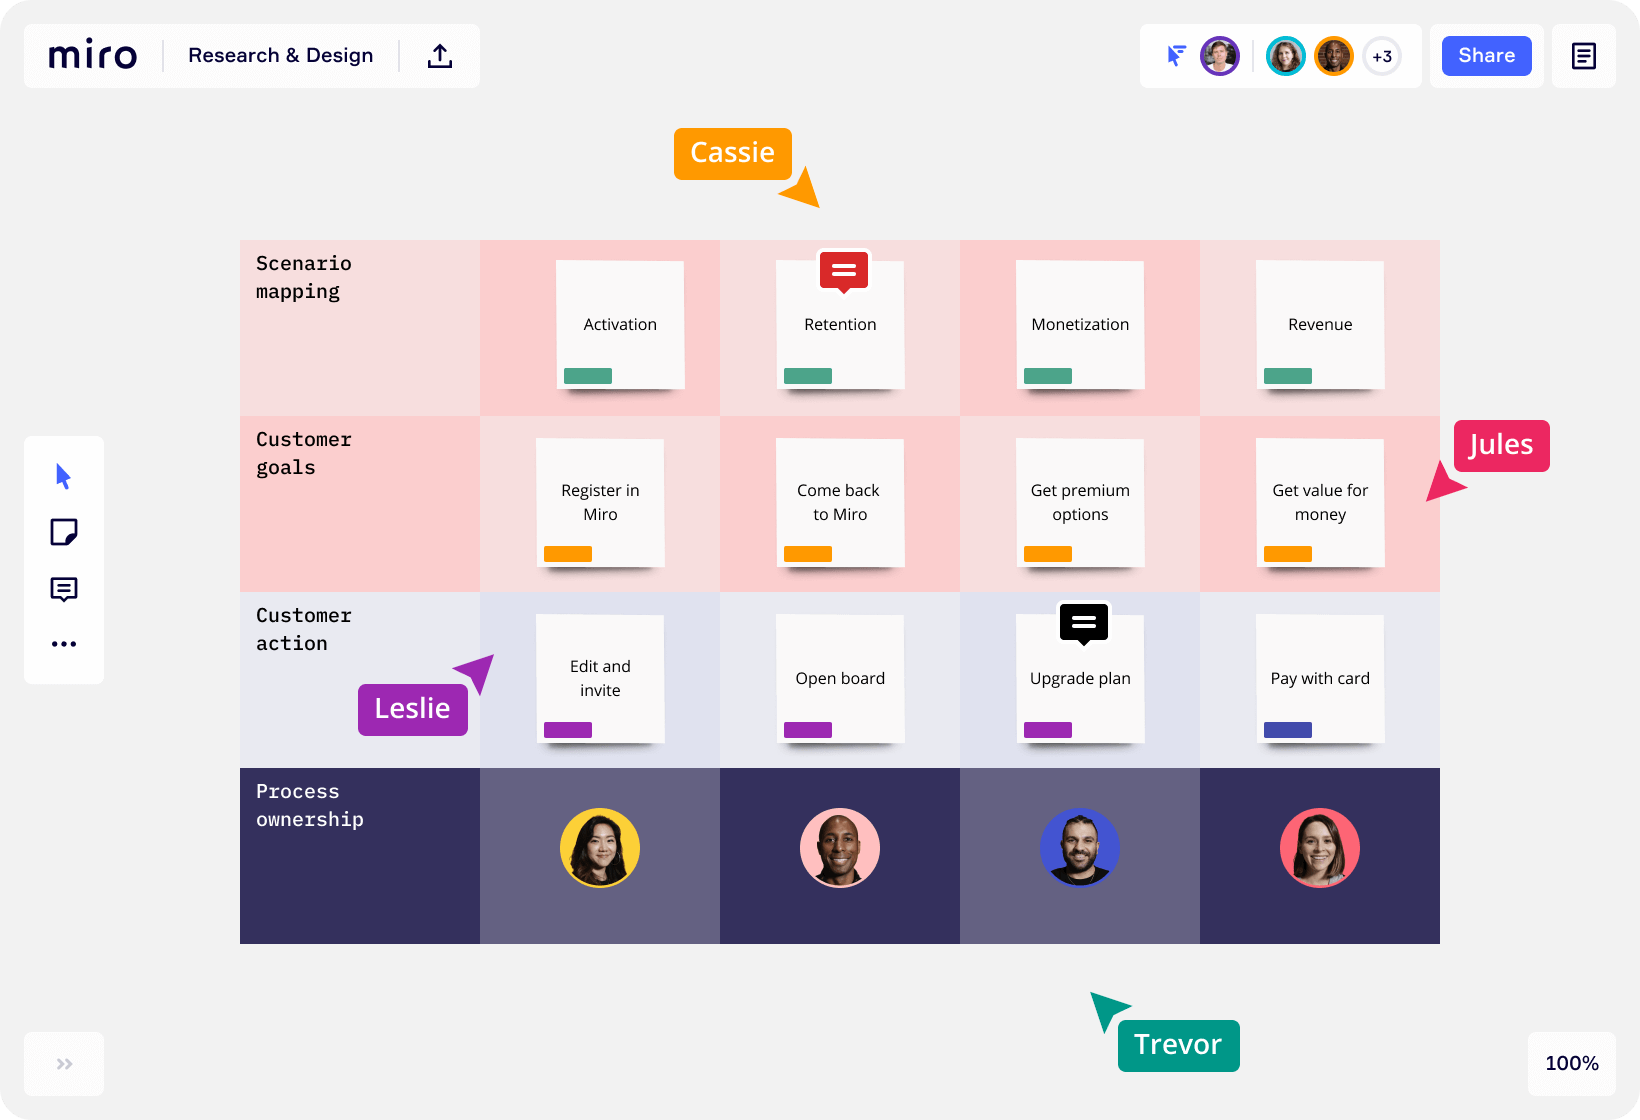 collaborative research and design tool miro